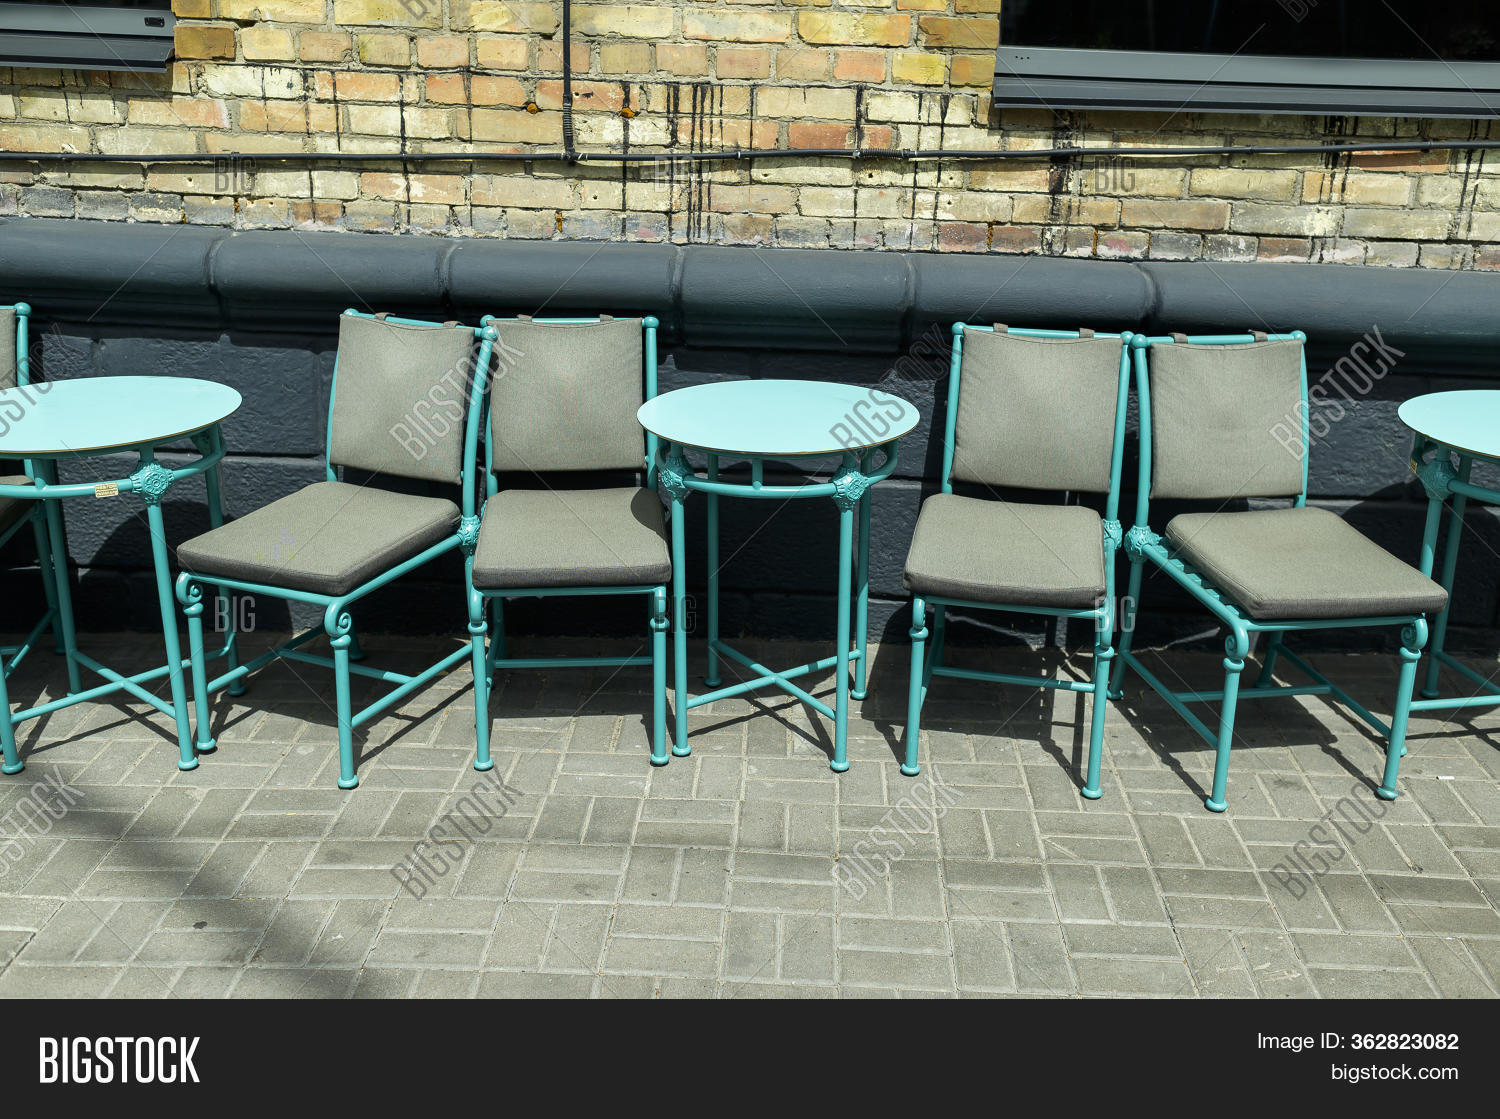 Outdoor Furniture Sets Image Photo Free Trial Bigstock - Outdoor Furniture Clearance Free